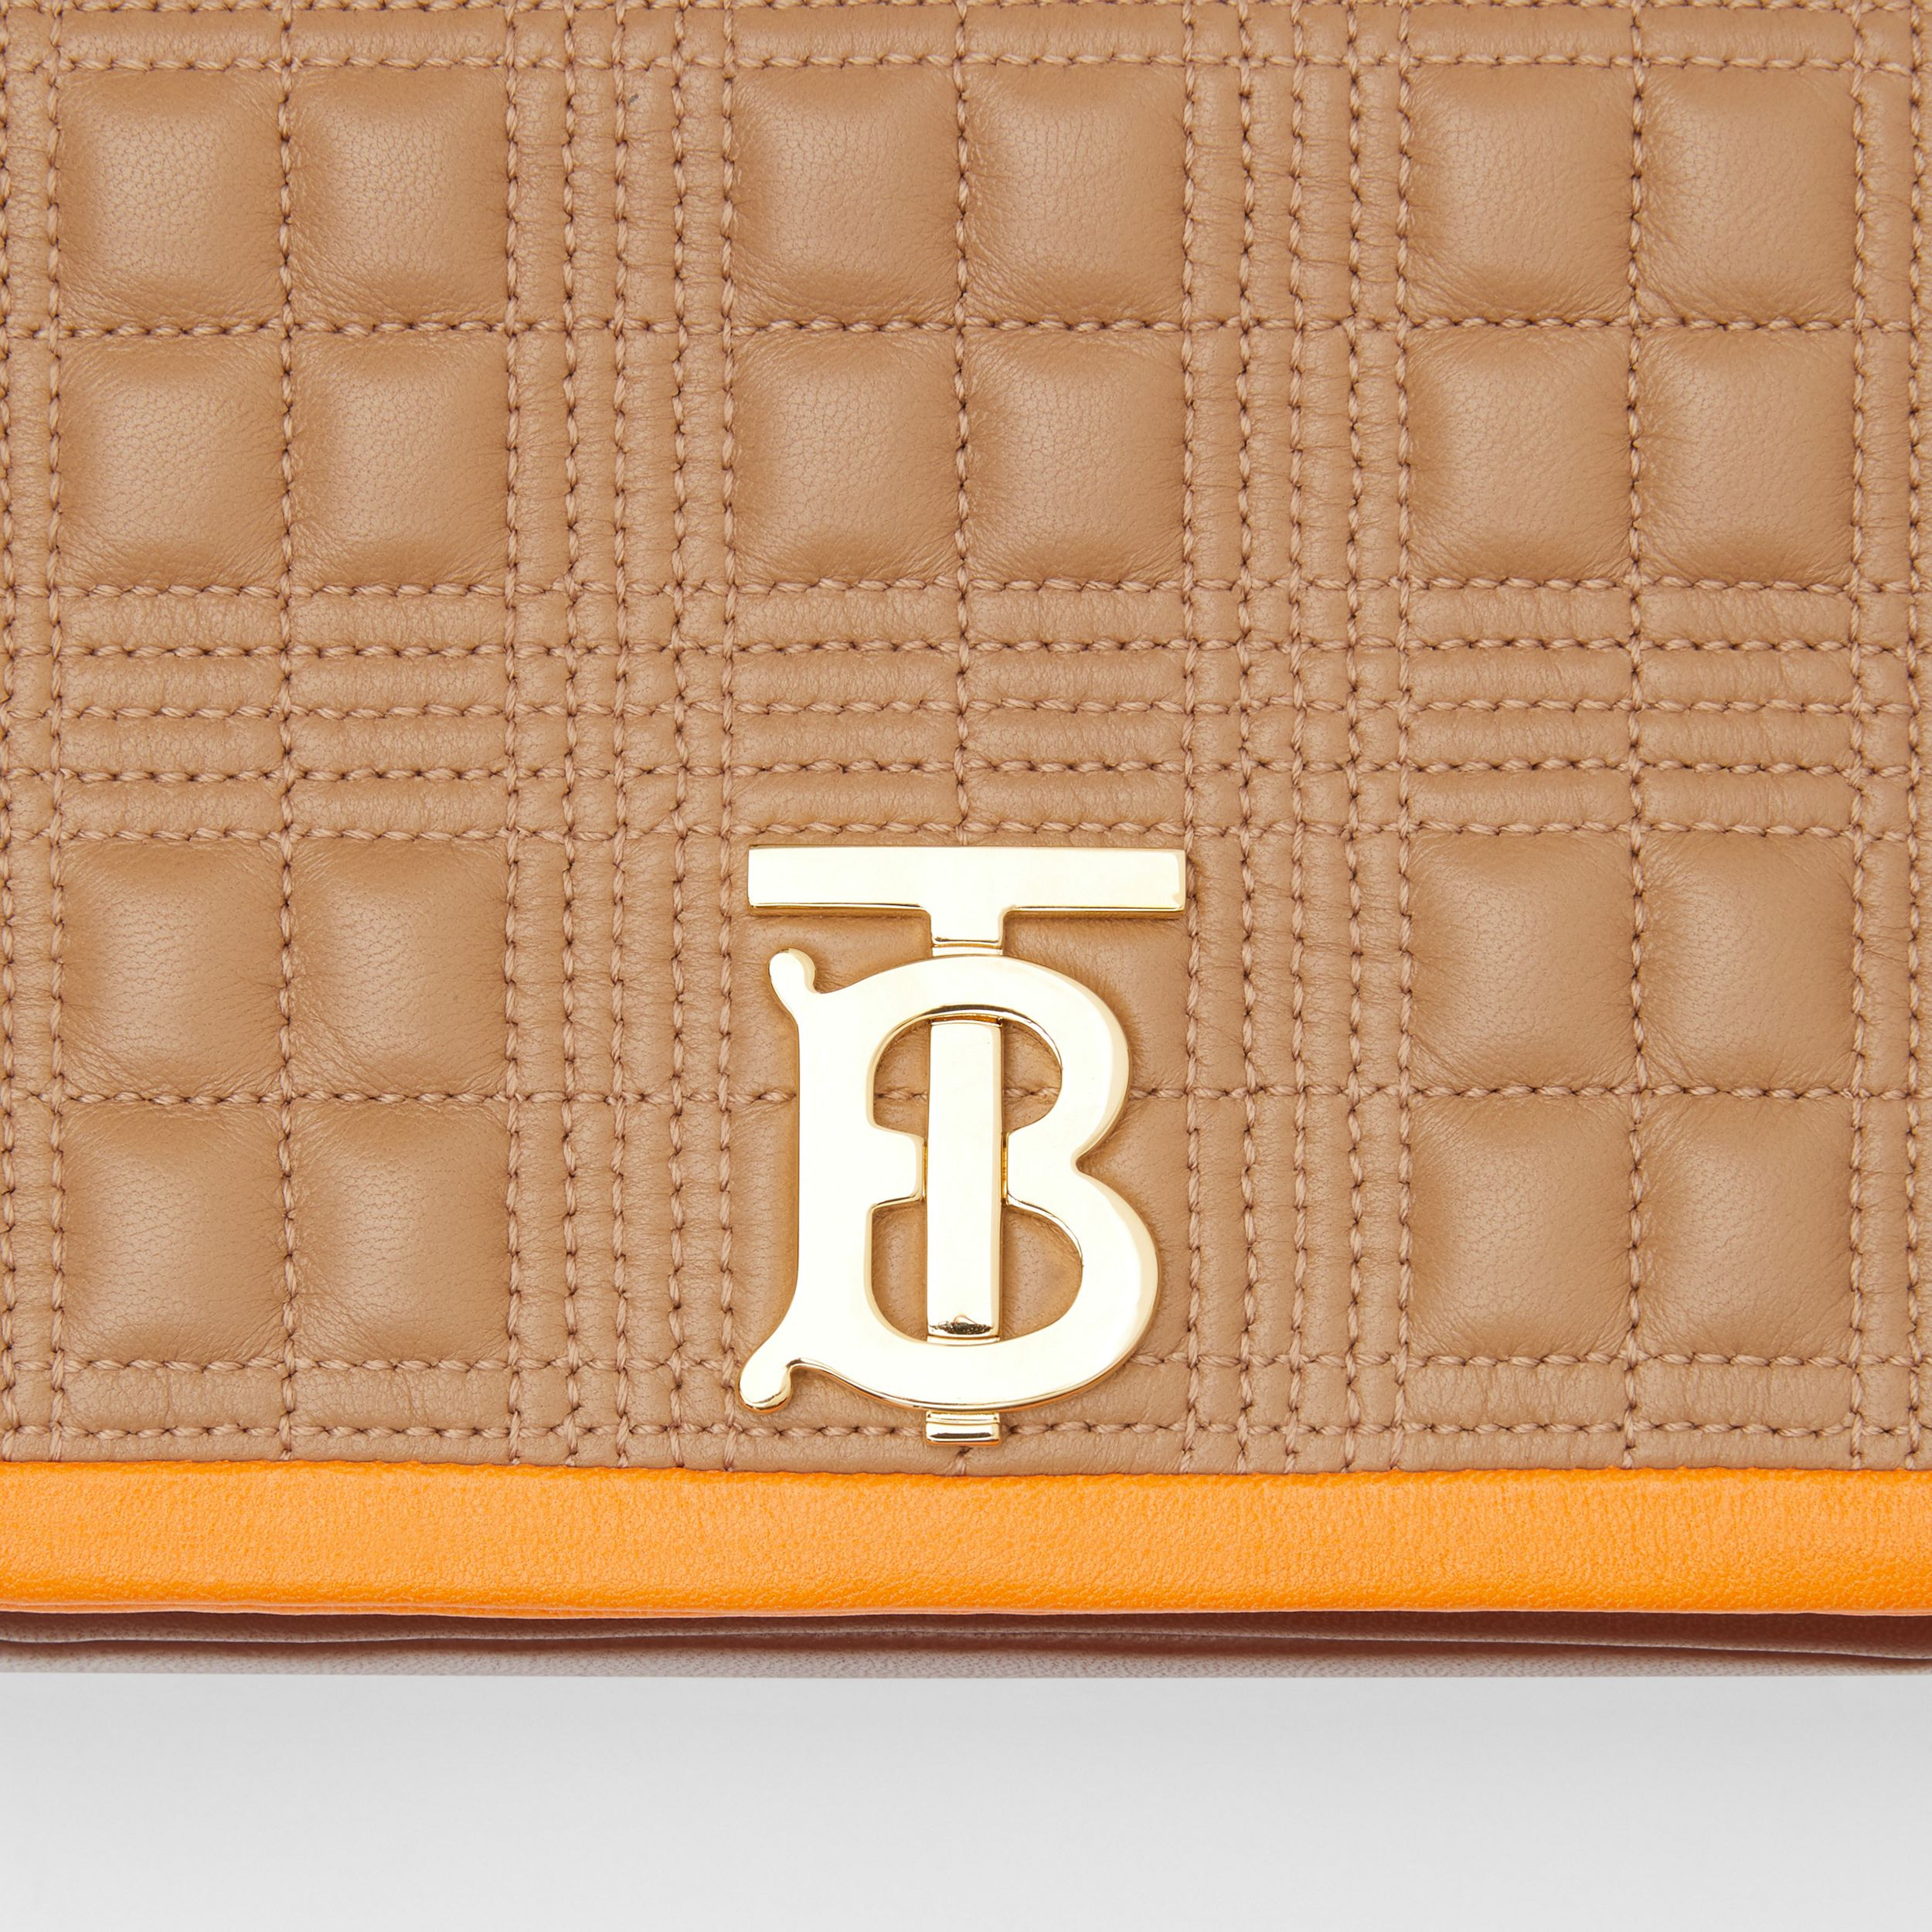 Small Quilted Tri-tone Lambskin Lola Bag in Camel/bright Orange - Women | Burberry - 2